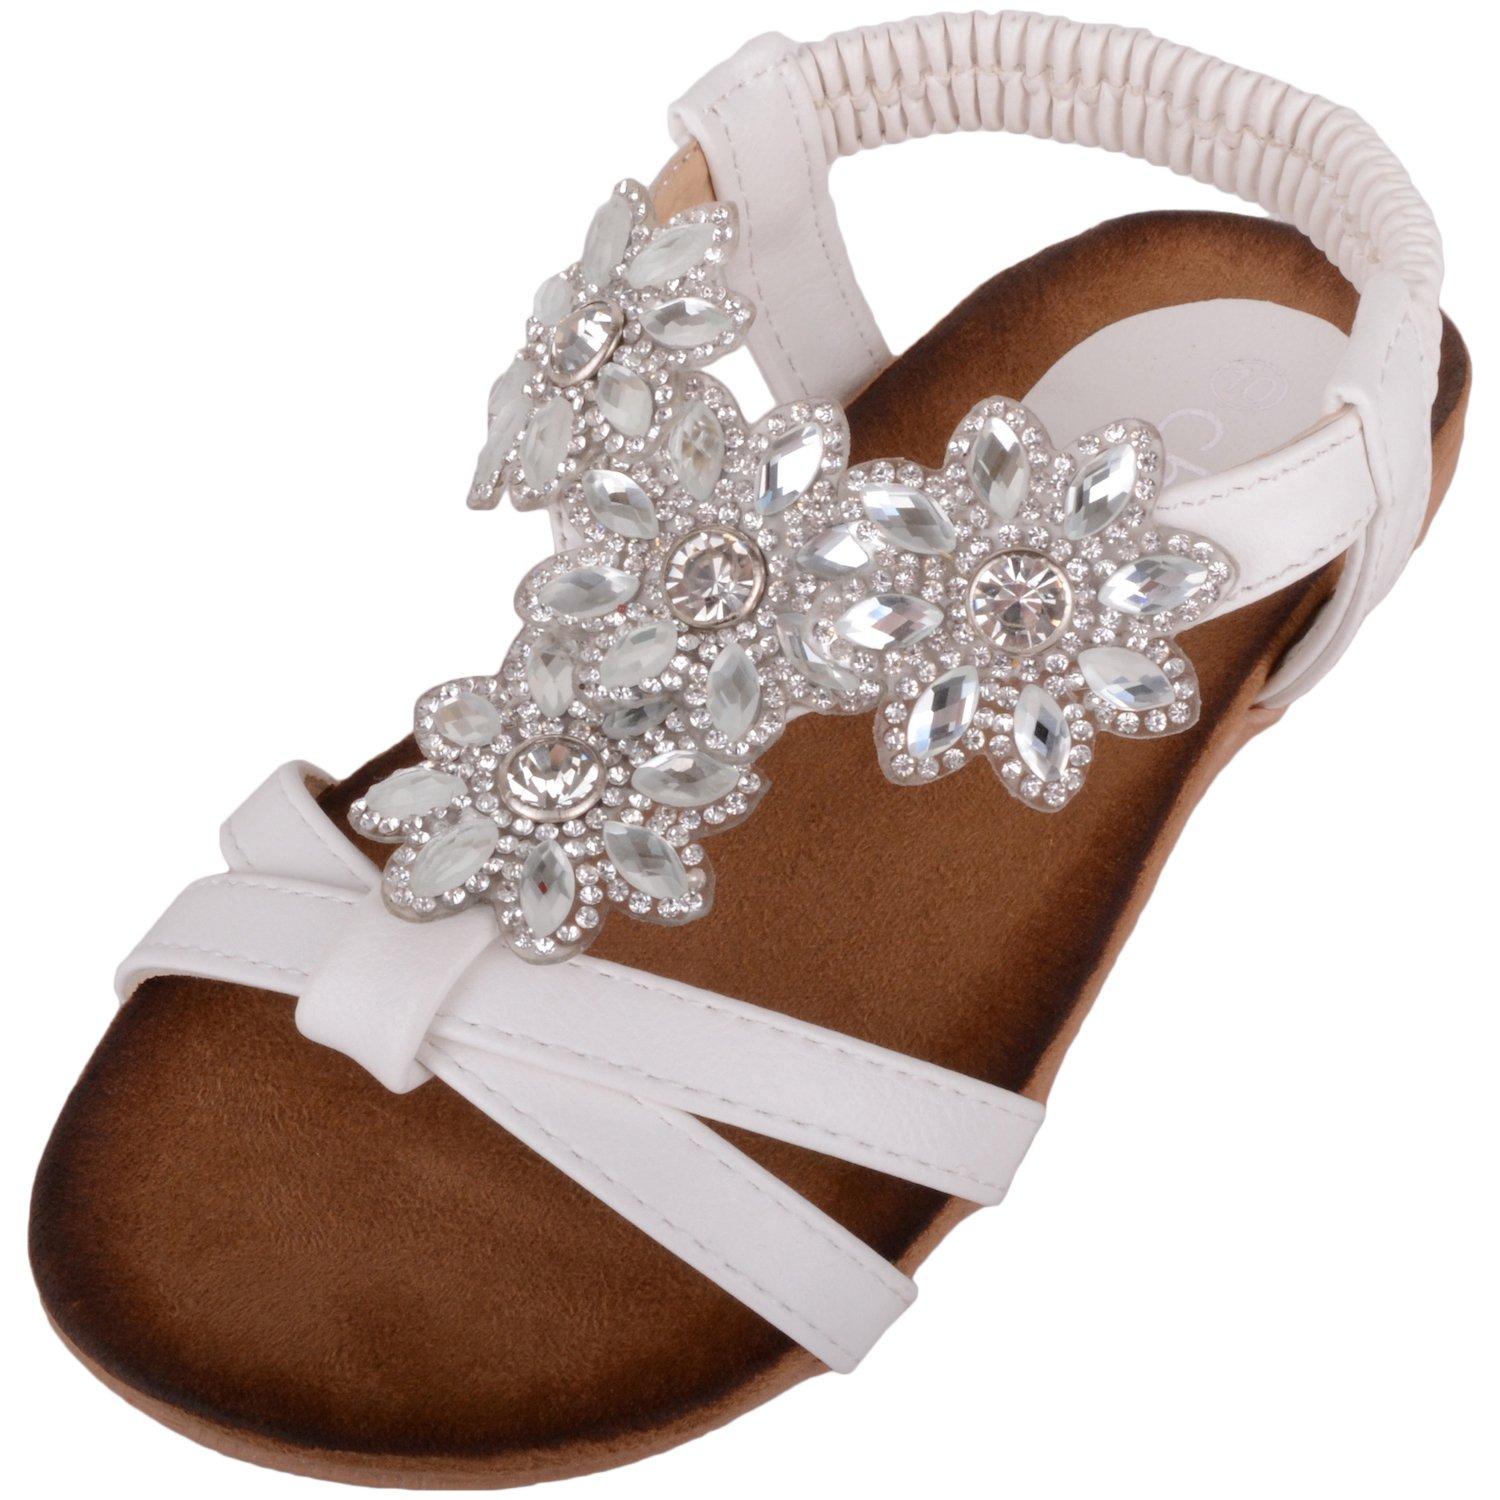 1cf4b4de673 Absolute Footwear Childrens Kids Girls Summer Holiday Sandals Shoes with  Floral Diamonte